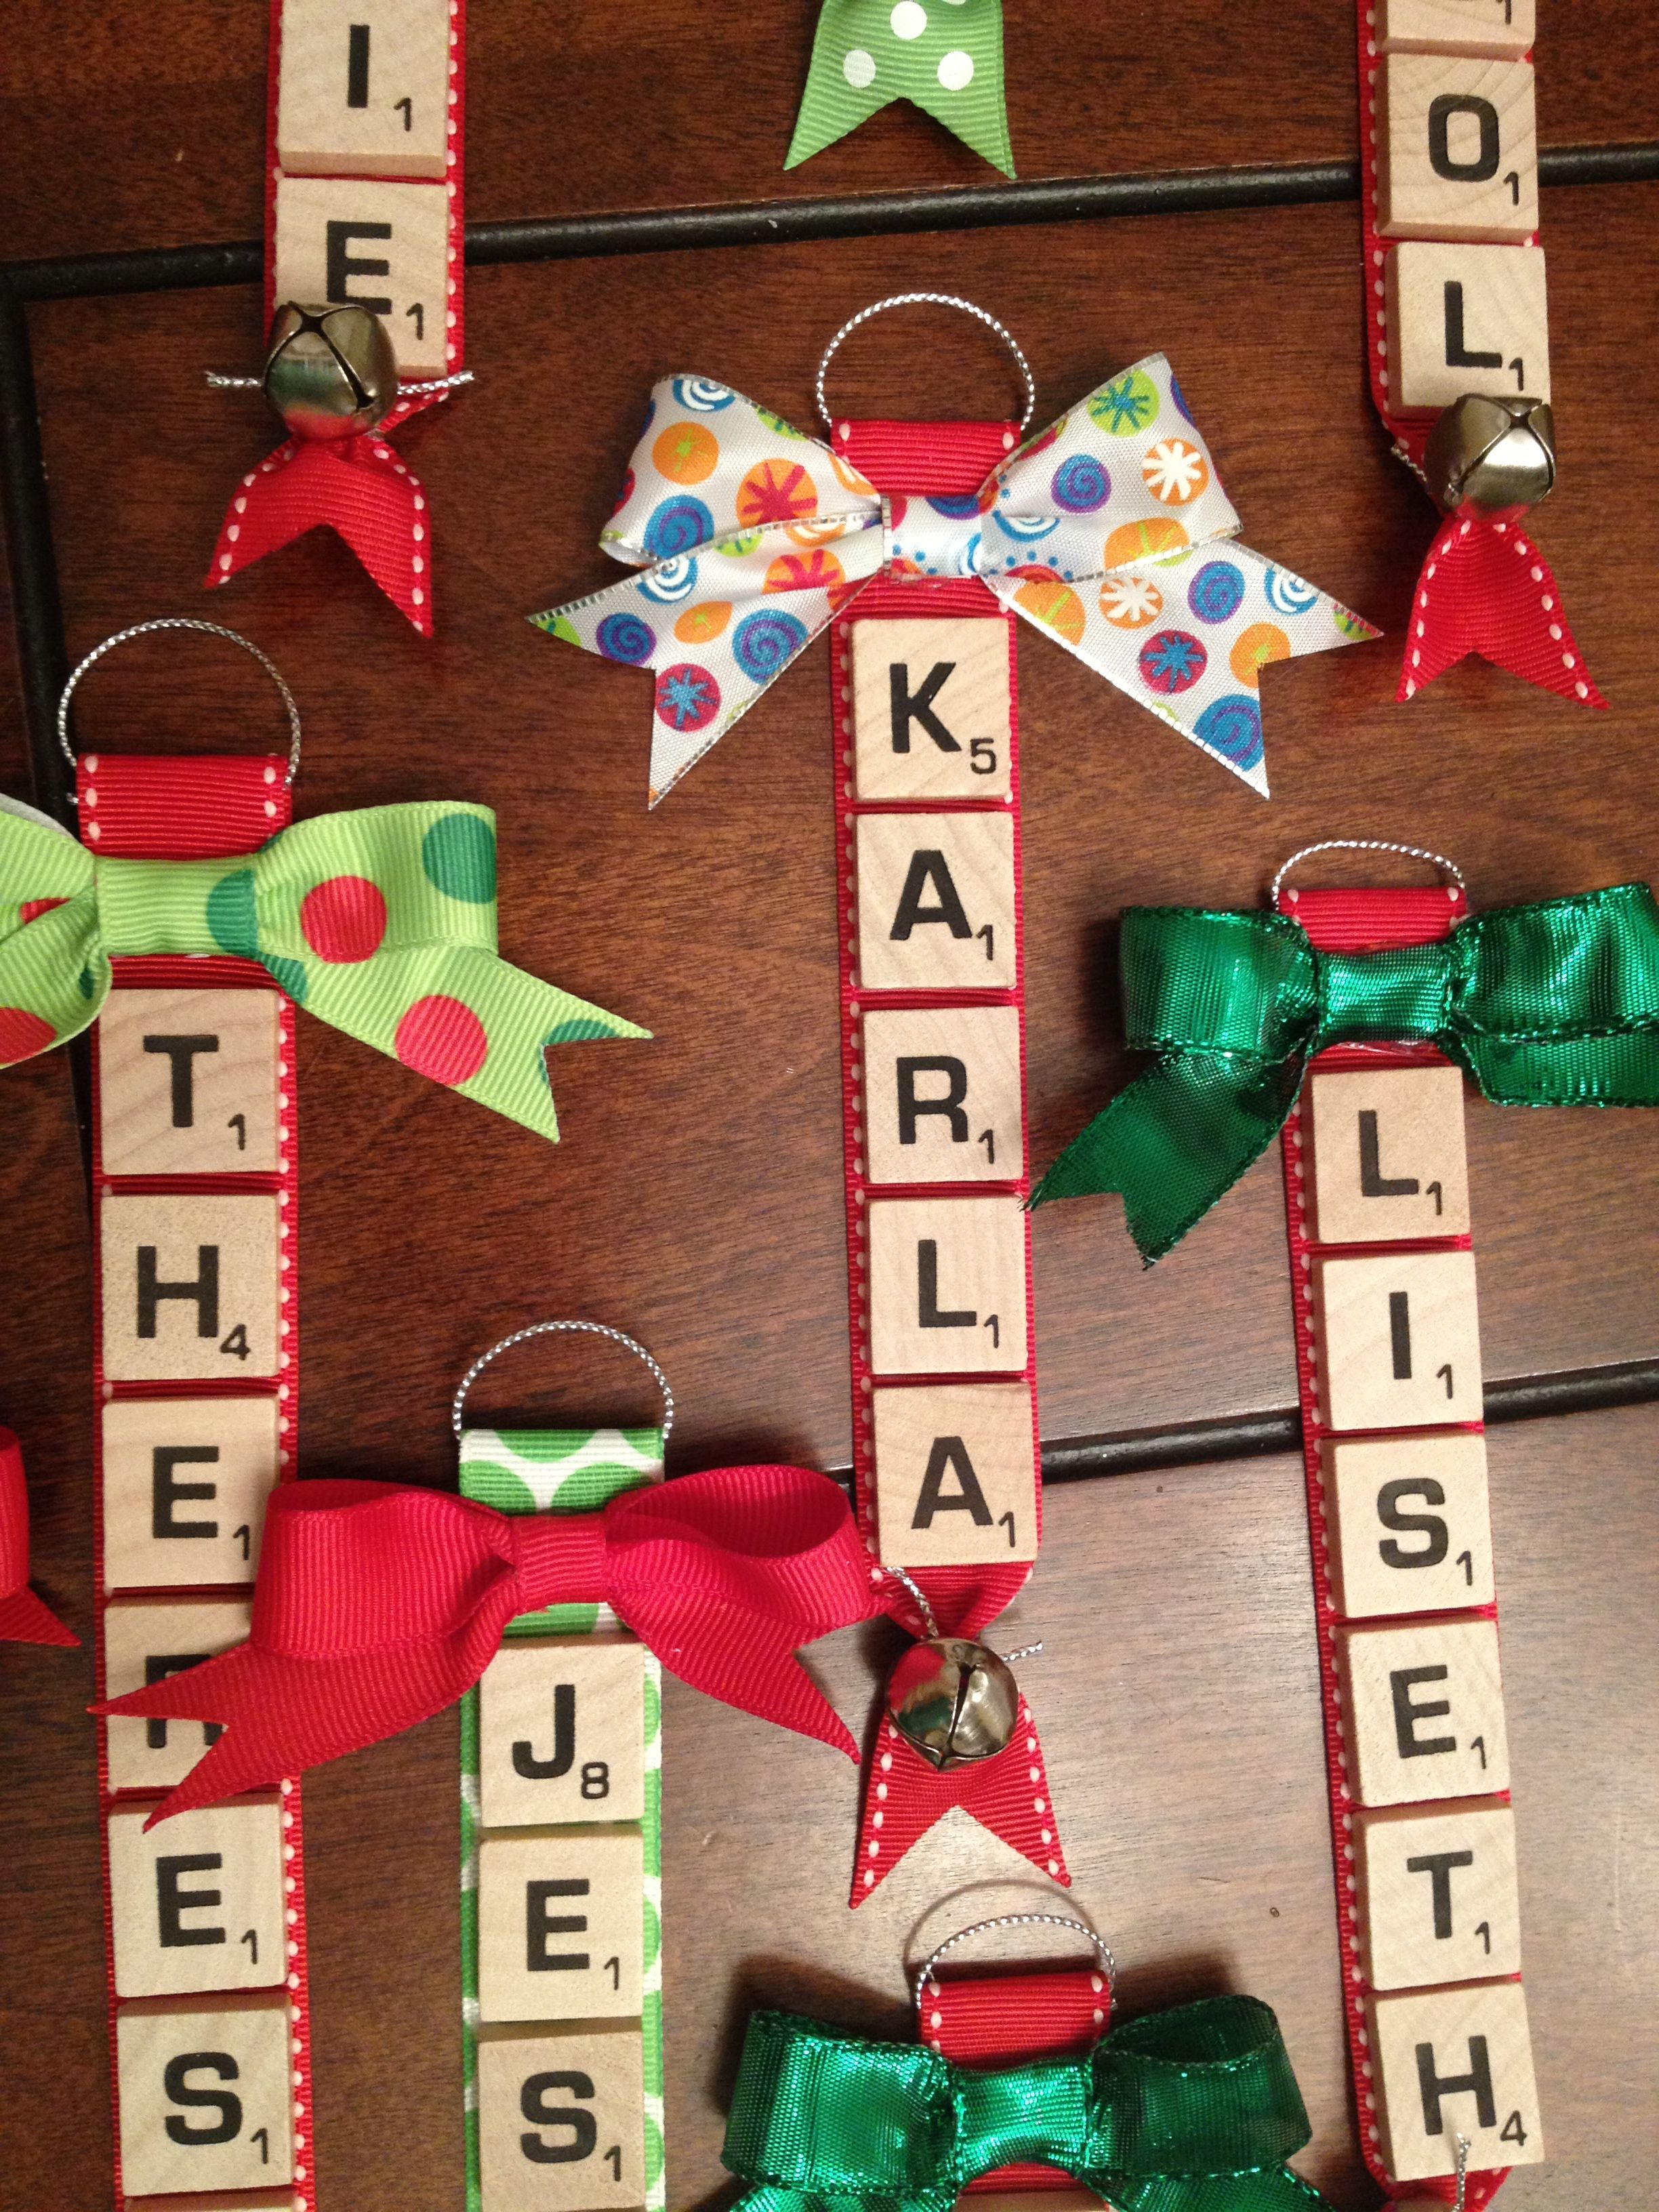 Tile Decorations Classy Personalized Scrabble Tile Ornaments With Bells And Bows Inspiration Design